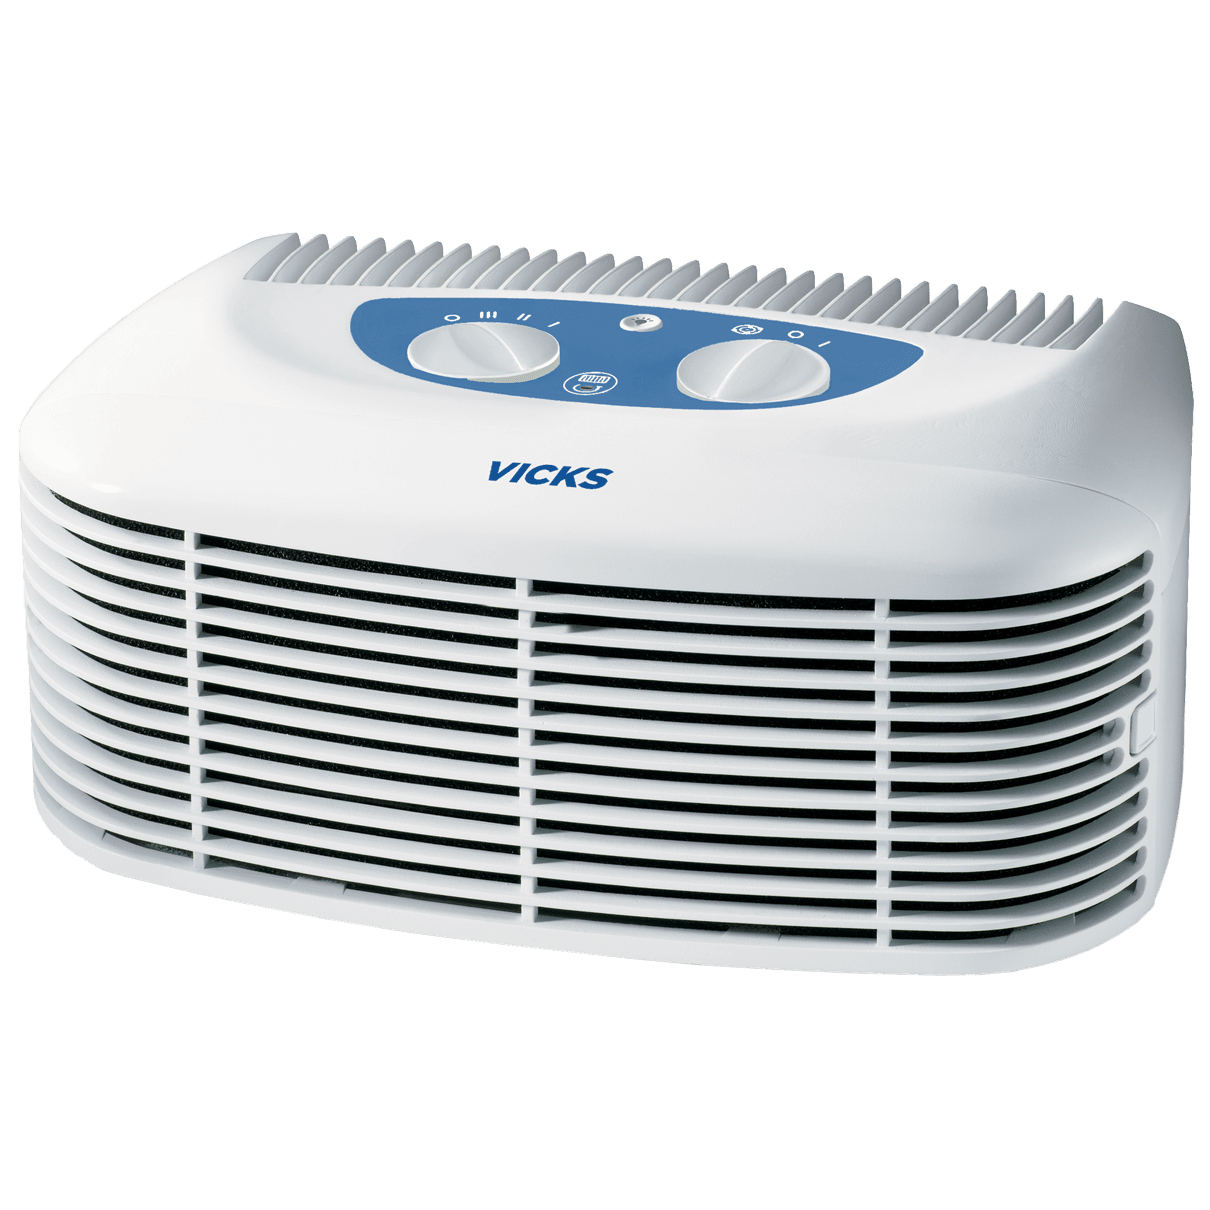 VICKS® CLEANAIR AIR PURIFIER (V-9071)